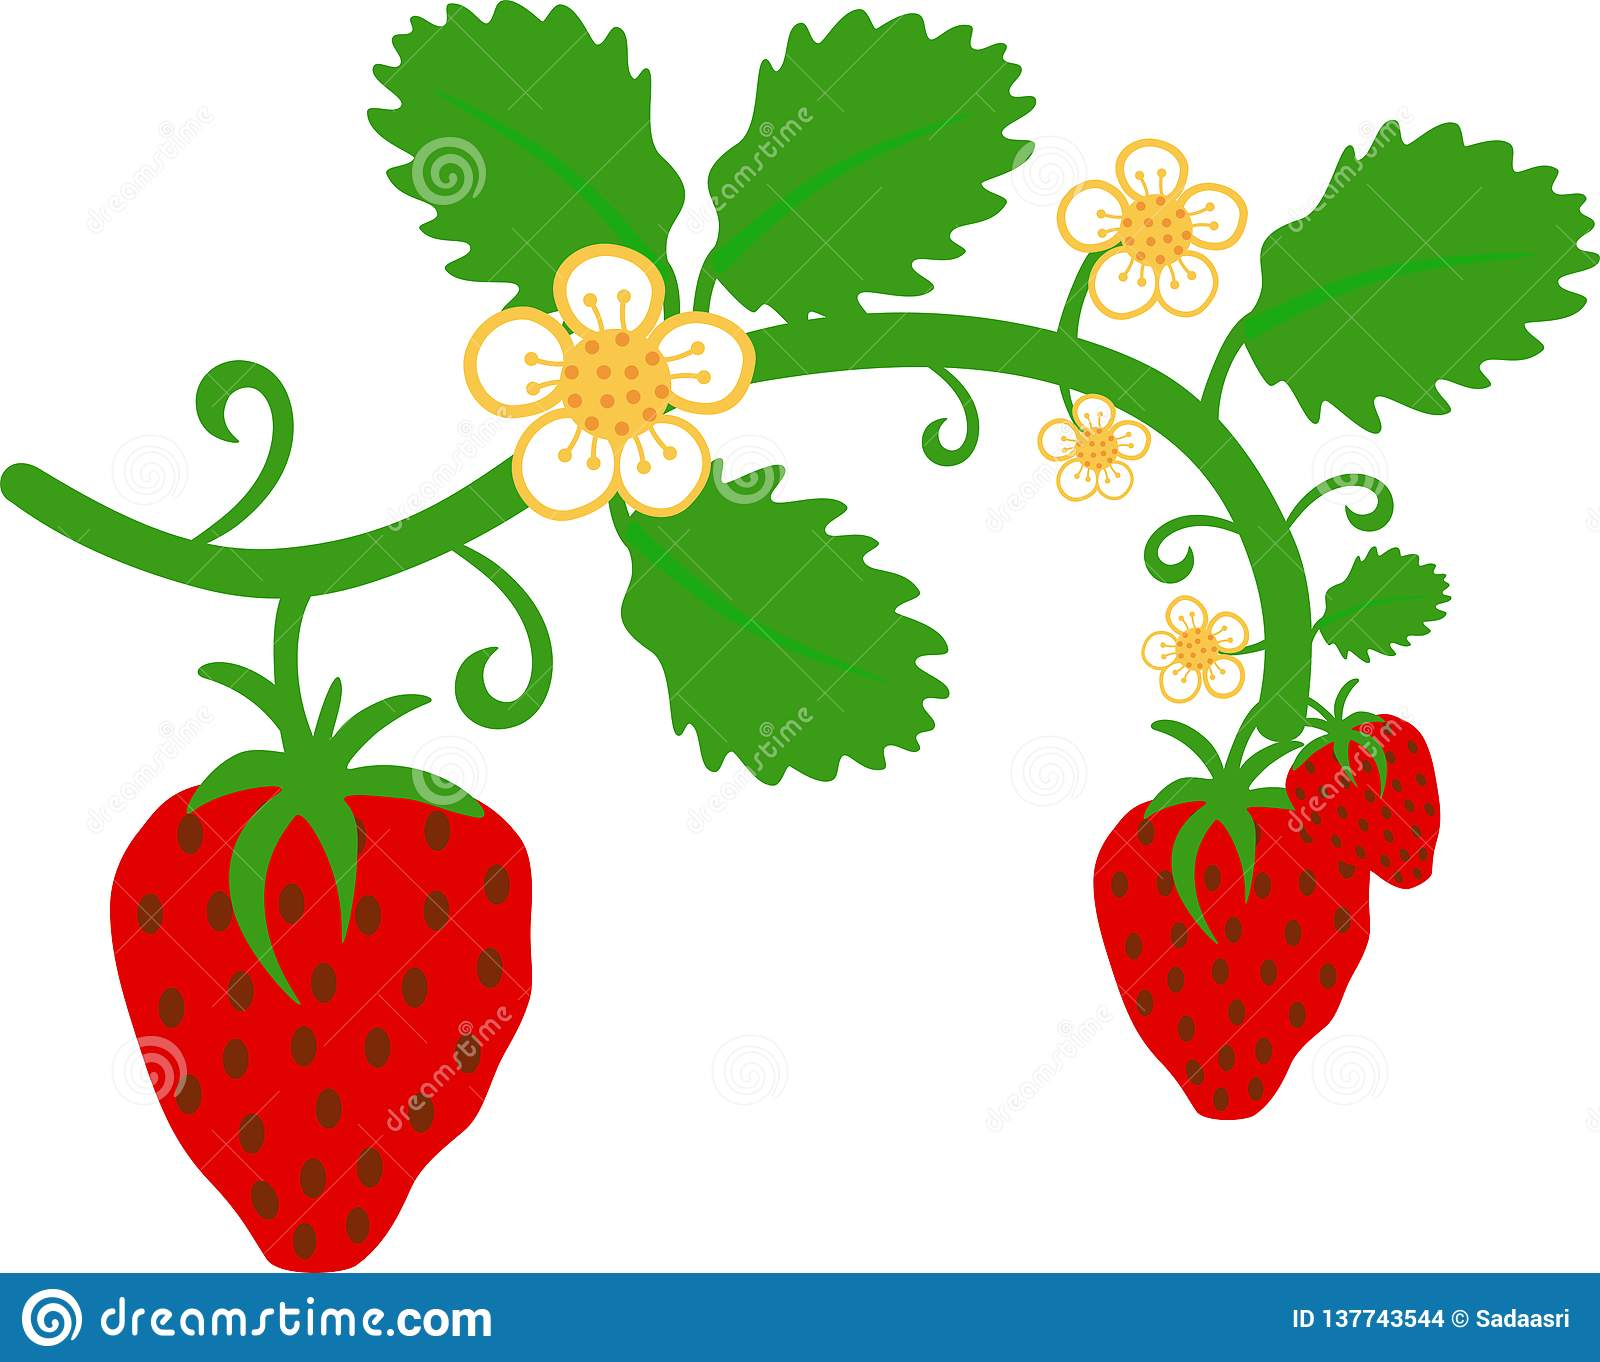 Strawberry with leaves ,stem and flowers